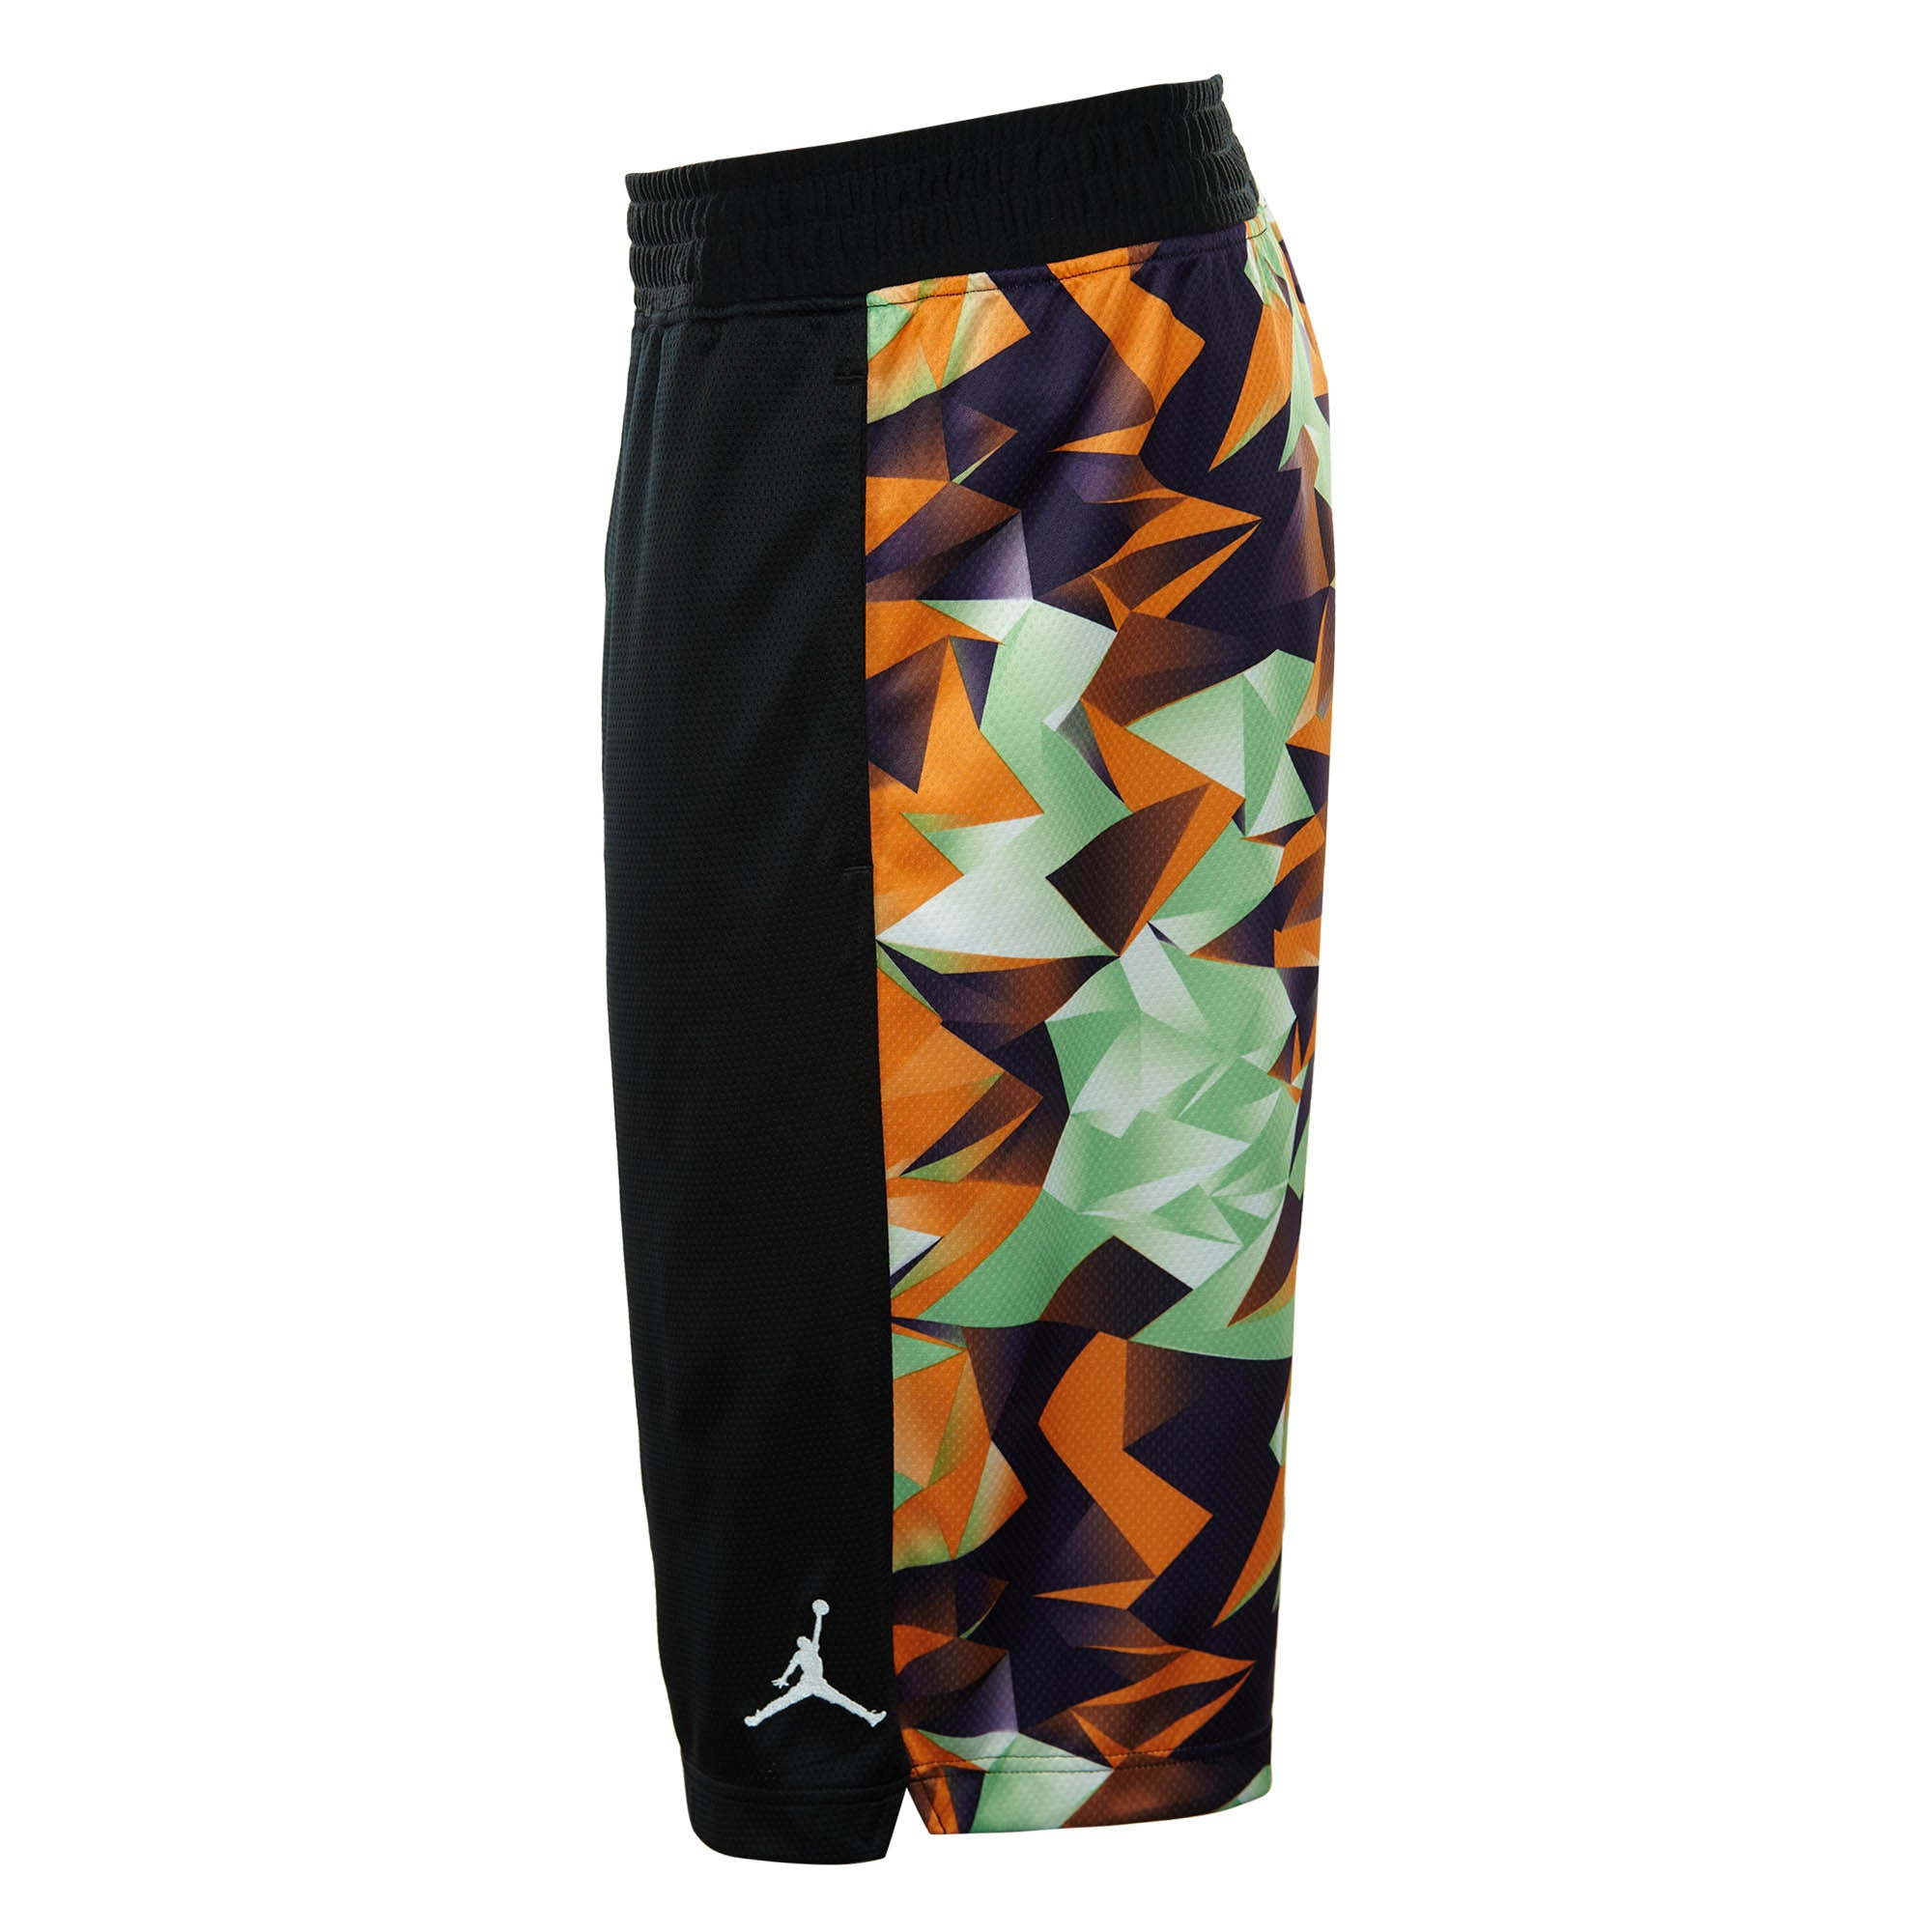 75a5e7817d6 Jordan 7 Vii Retro Hare Basketball Shorts Mens Style : 642594